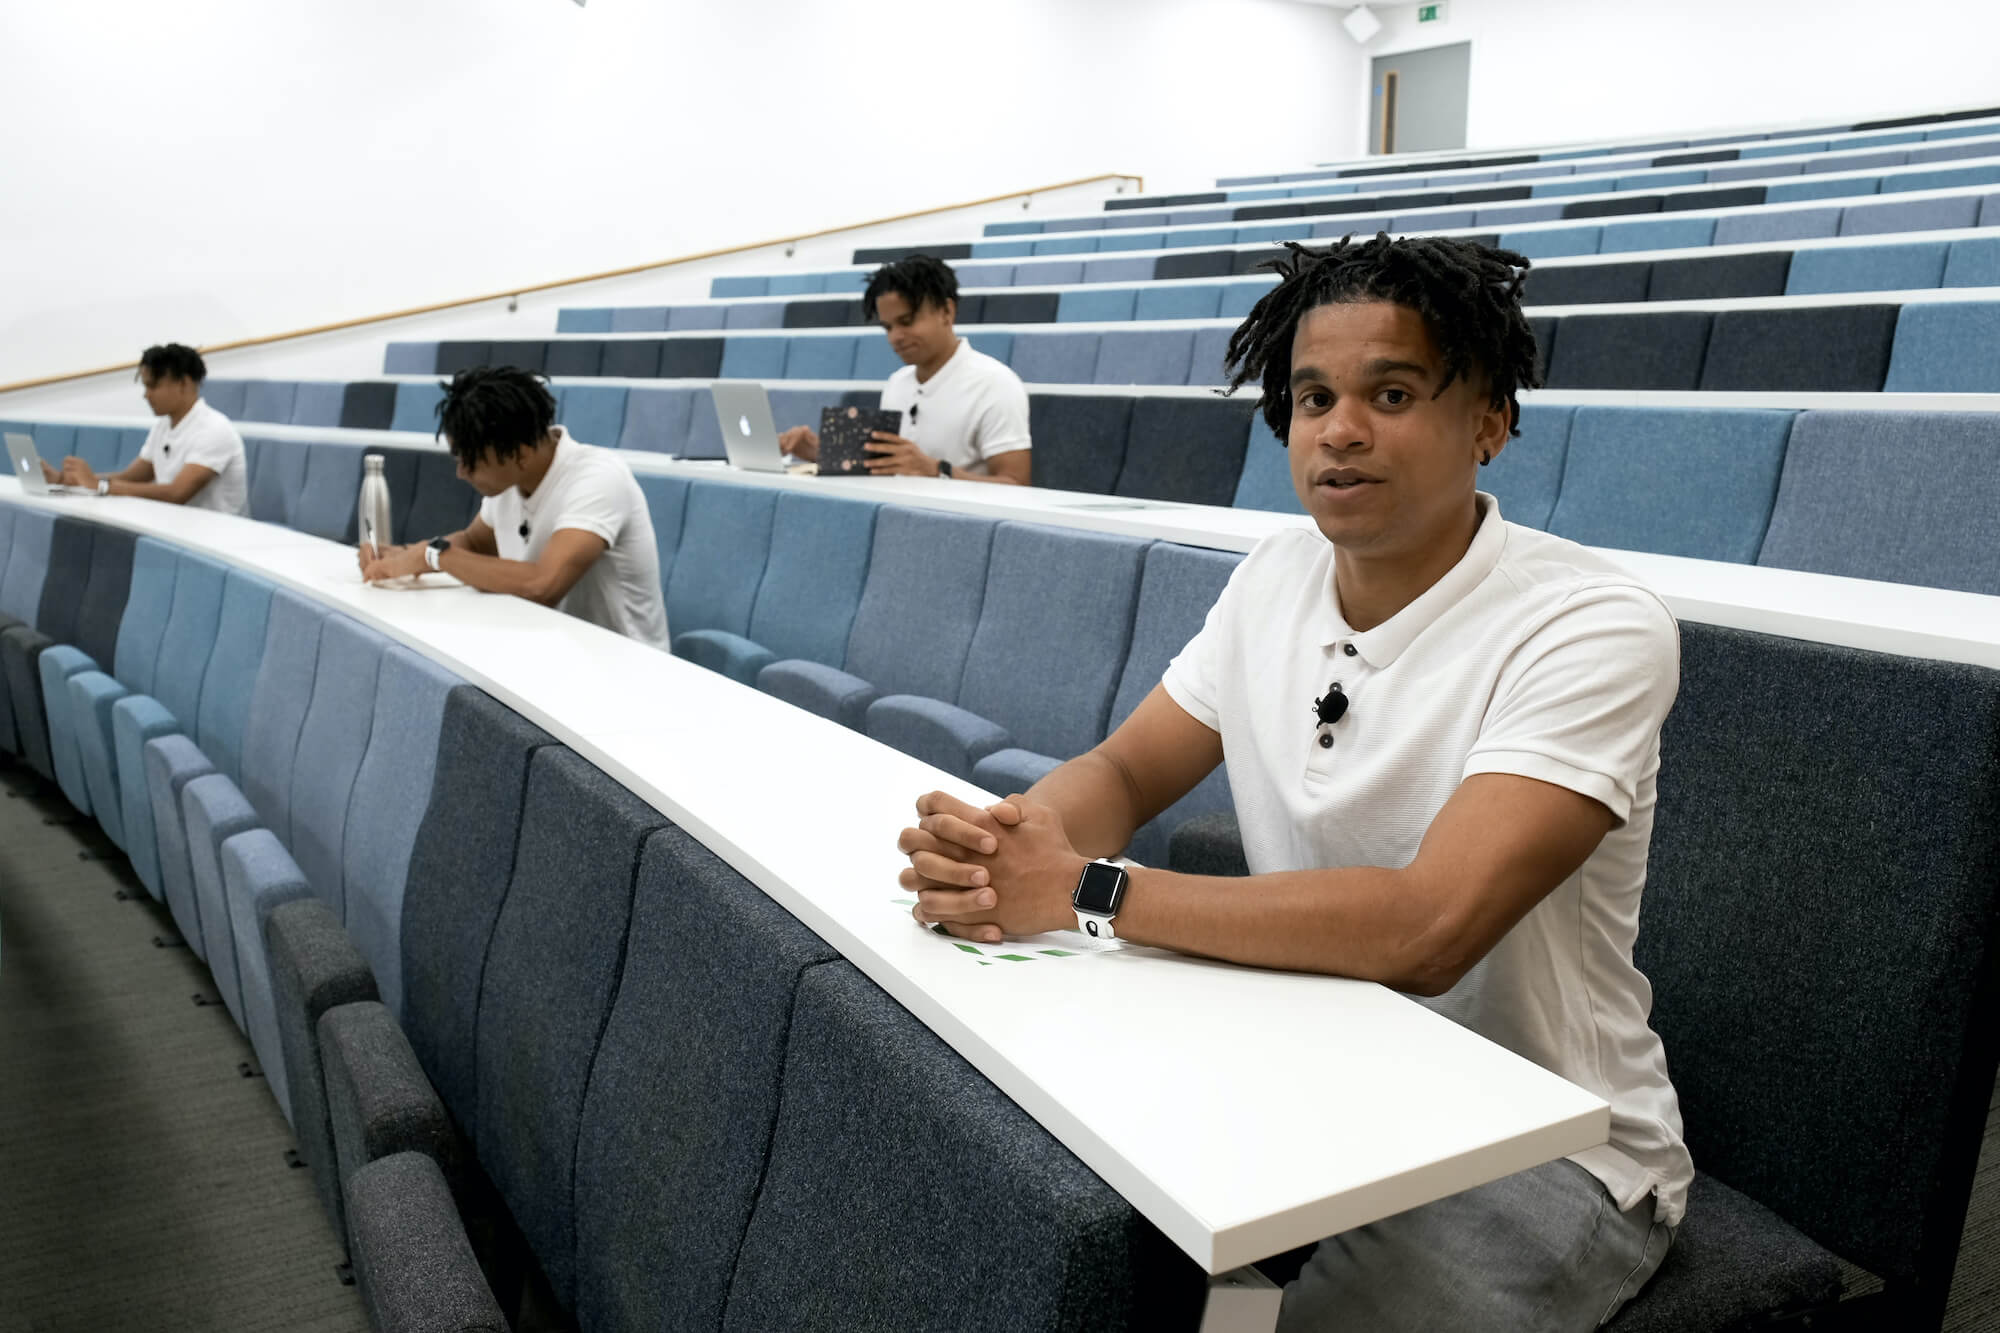 MBA student Clarence in a lecture-theatre